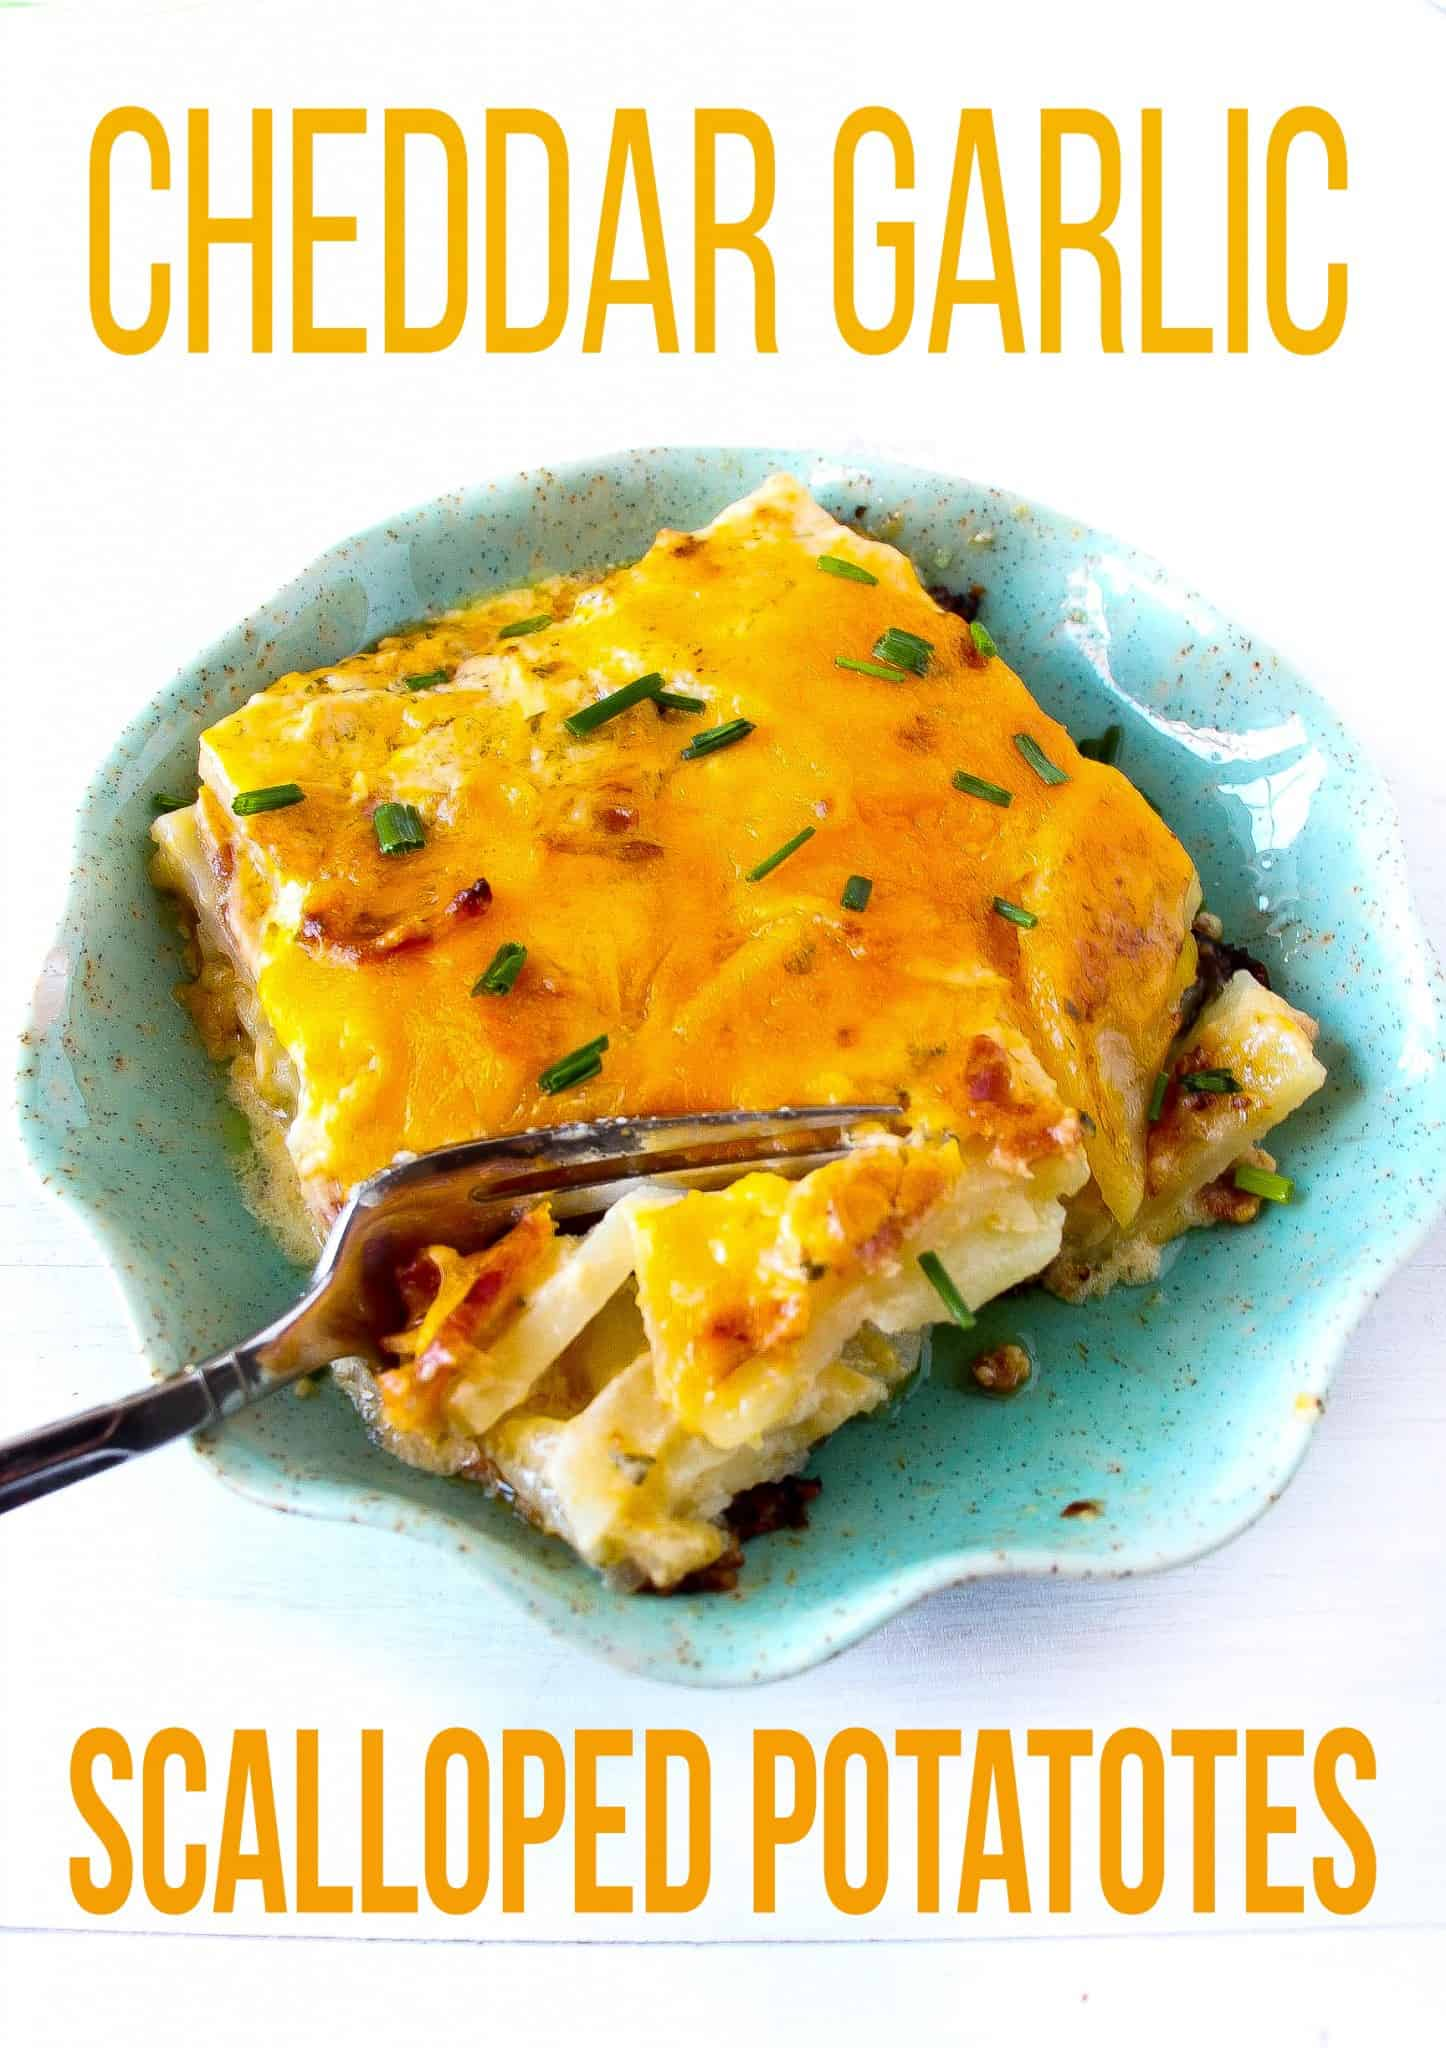 cheddar-garlic-potatoes copy